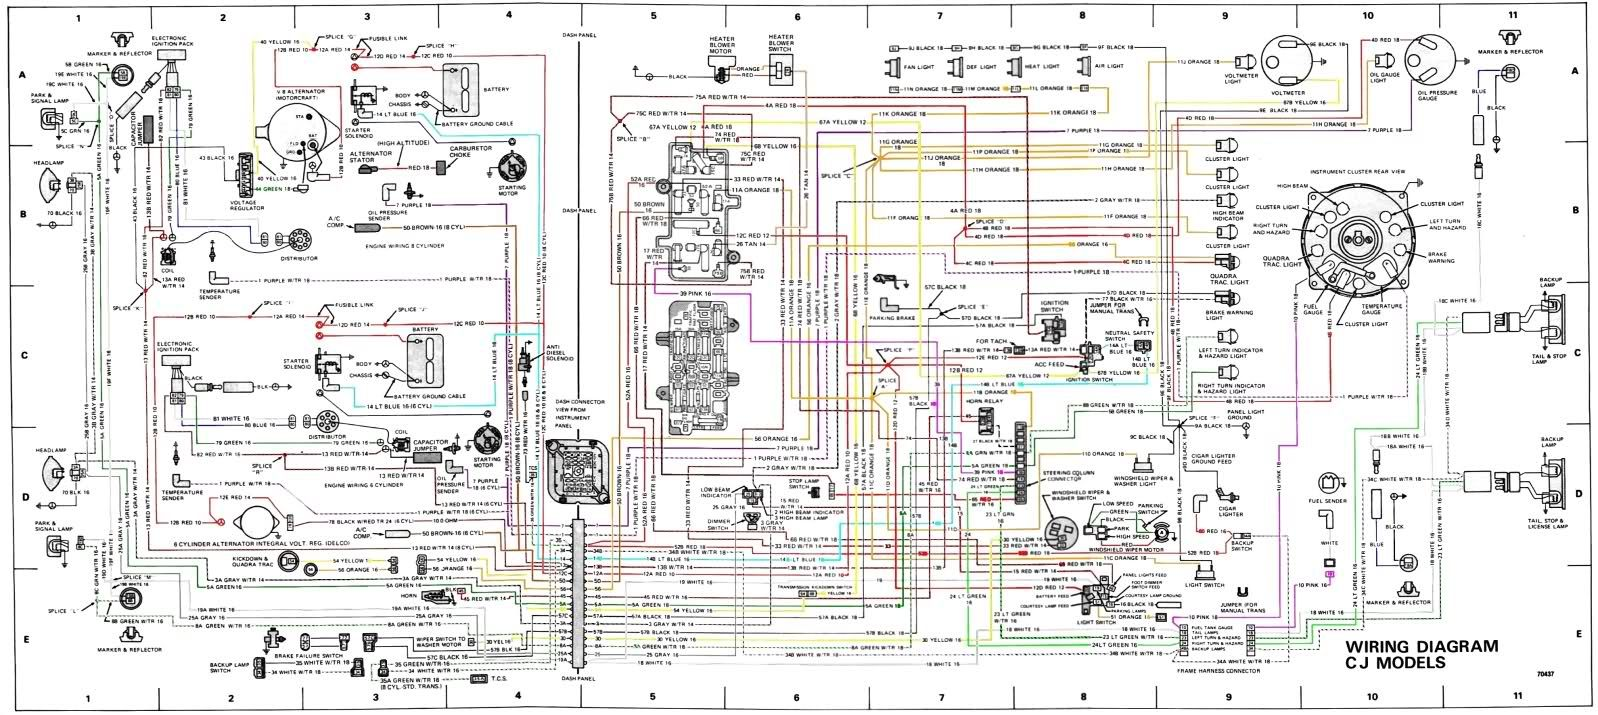 Jeep Cj7 Wiring Diagram Pdf